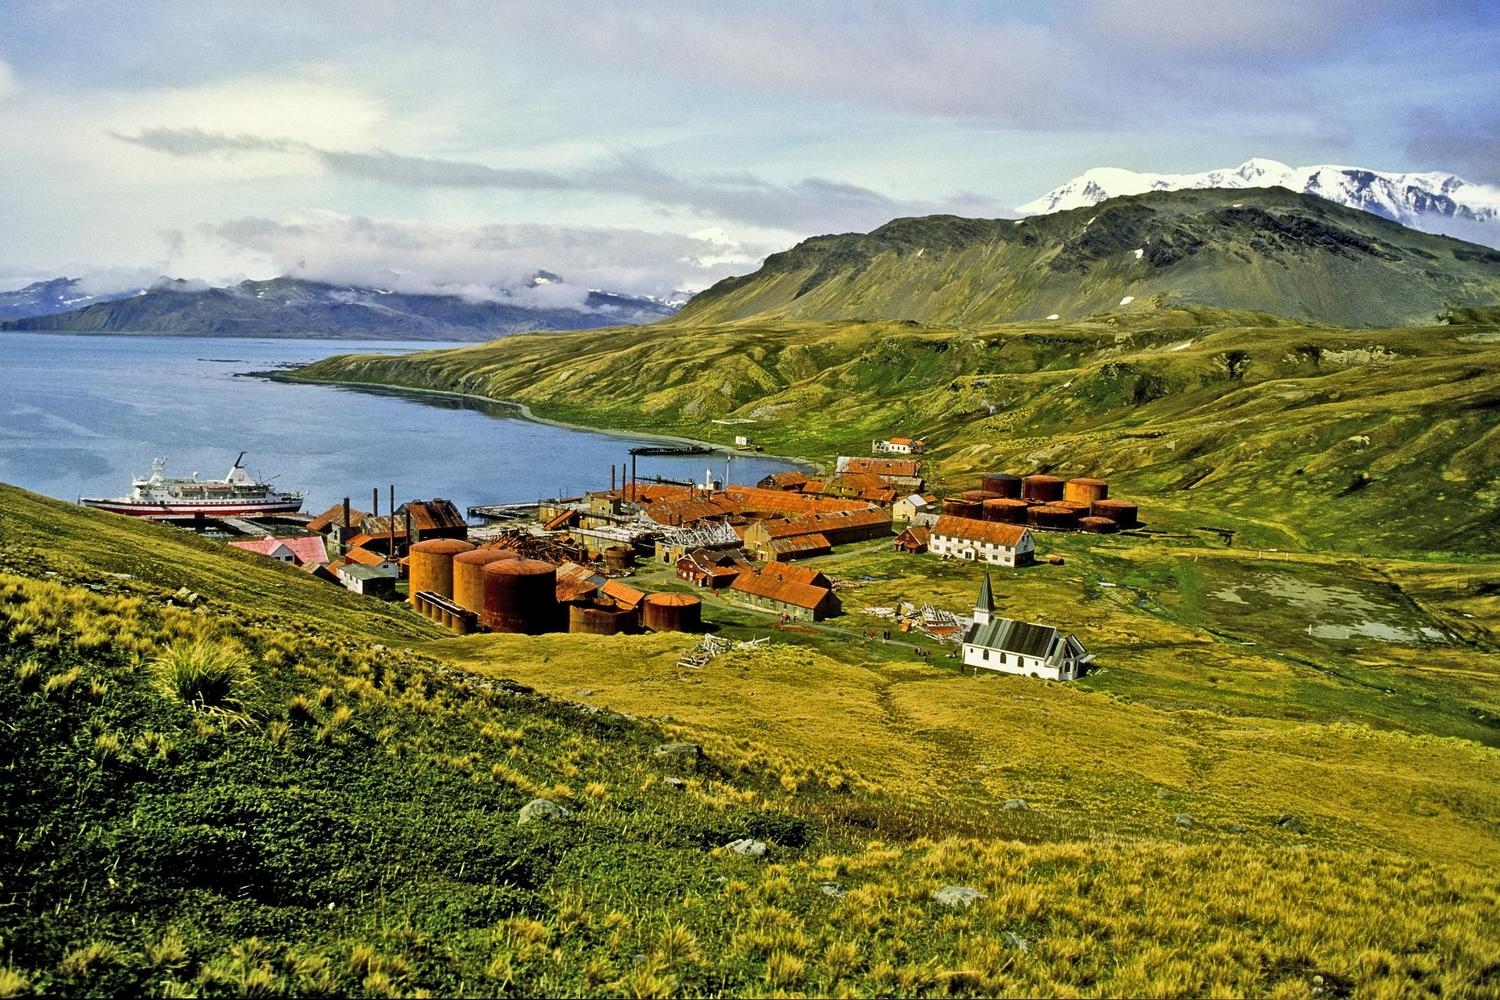 The abandoned whaling station at Grytviken on South Georgia